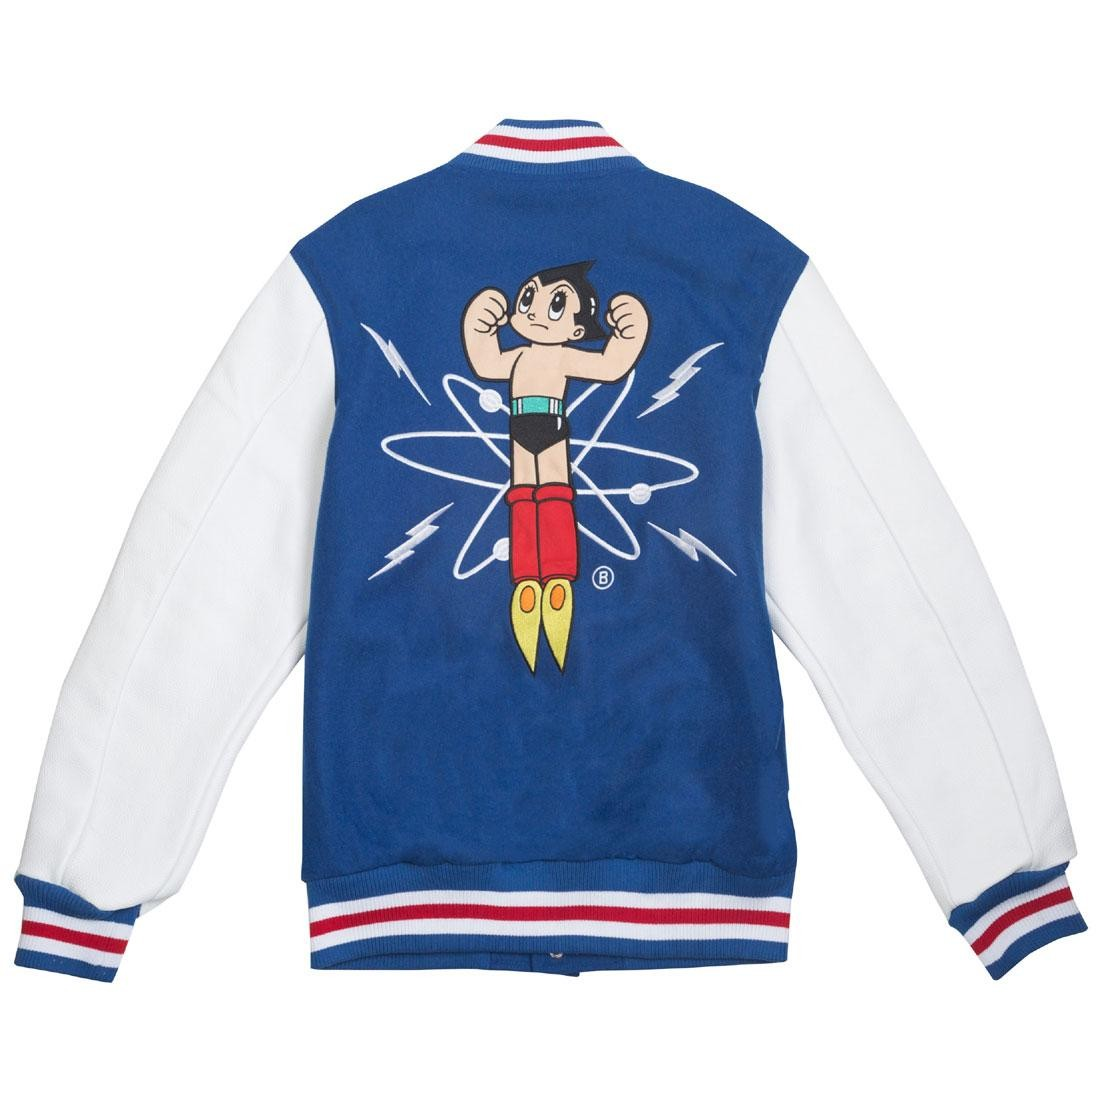 BAIT x Astro Boy Men Launch Varsity Jacket (blue / white)